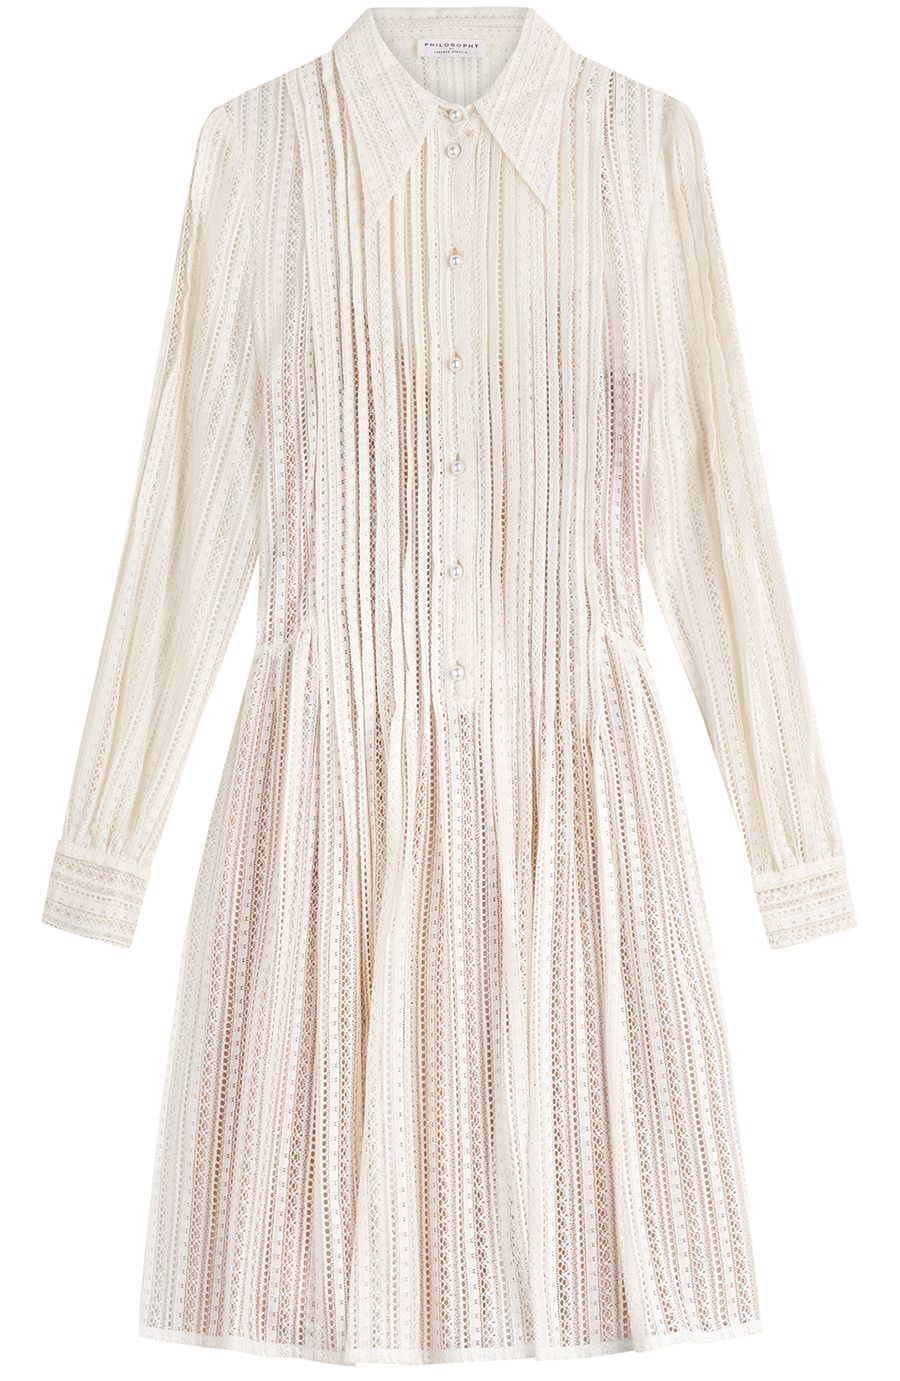 Chemisier Long Sleeves Dress Spring/summer Philosophy di Lorenzo Serafini cqdOhhTw